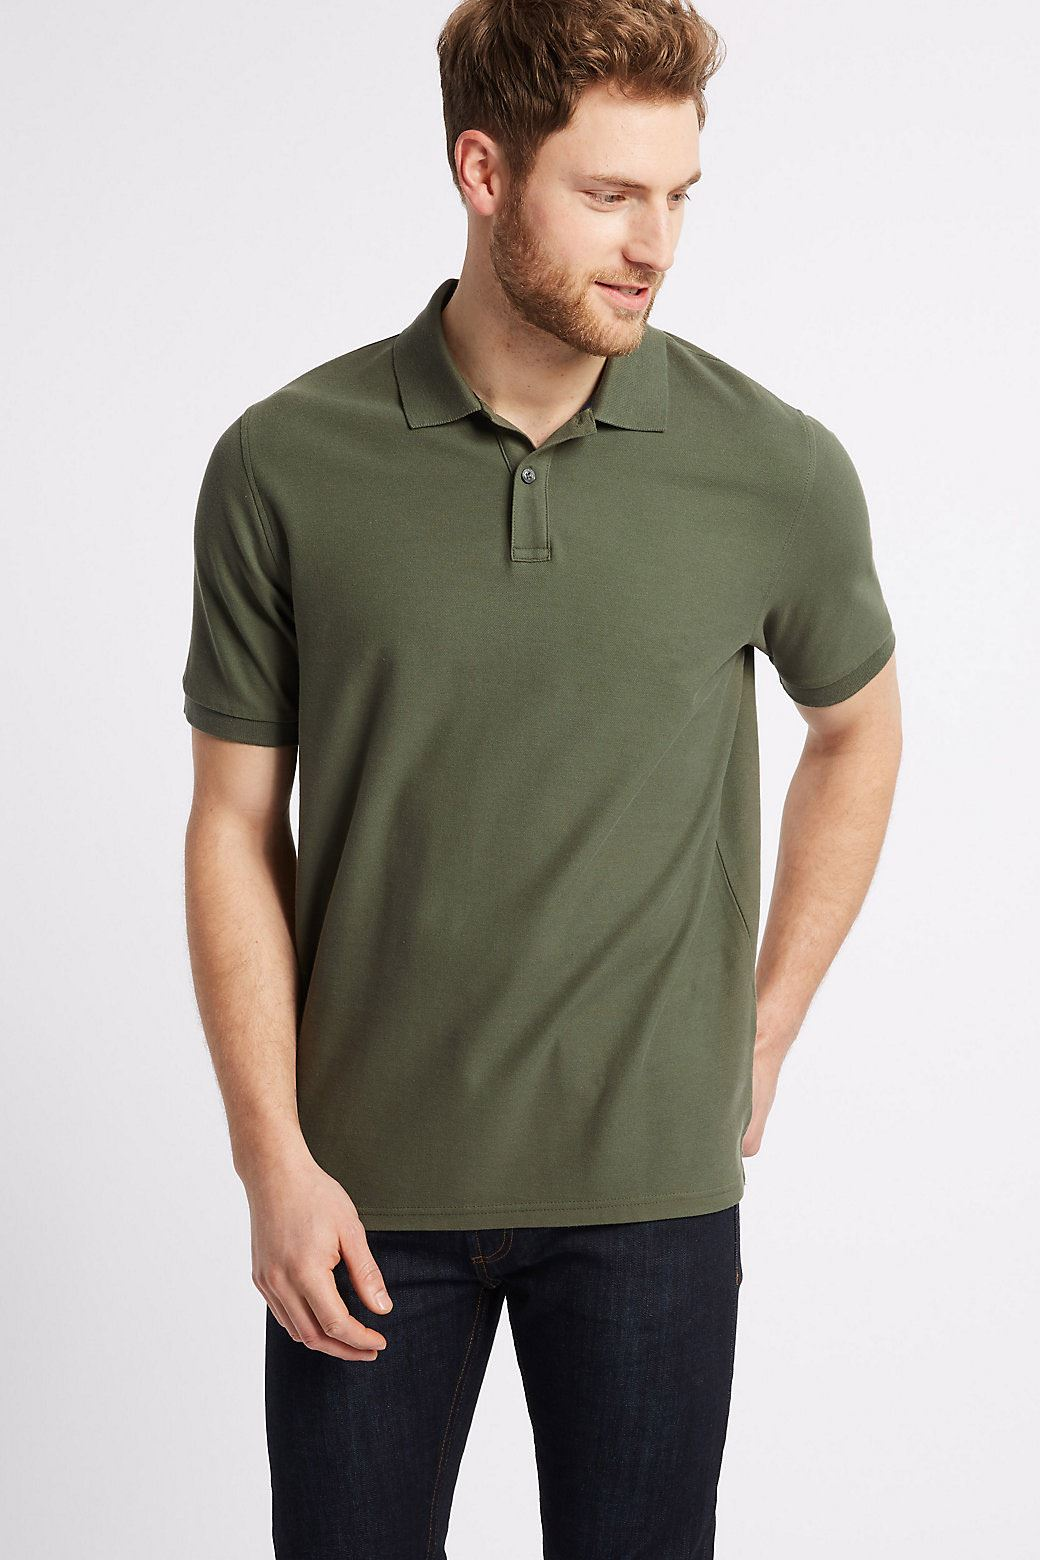 Marks-amp-Spencer-Mens-Cotton-Pique-Polo-Shirt-Extra-Large-Sizes thumbnail 14